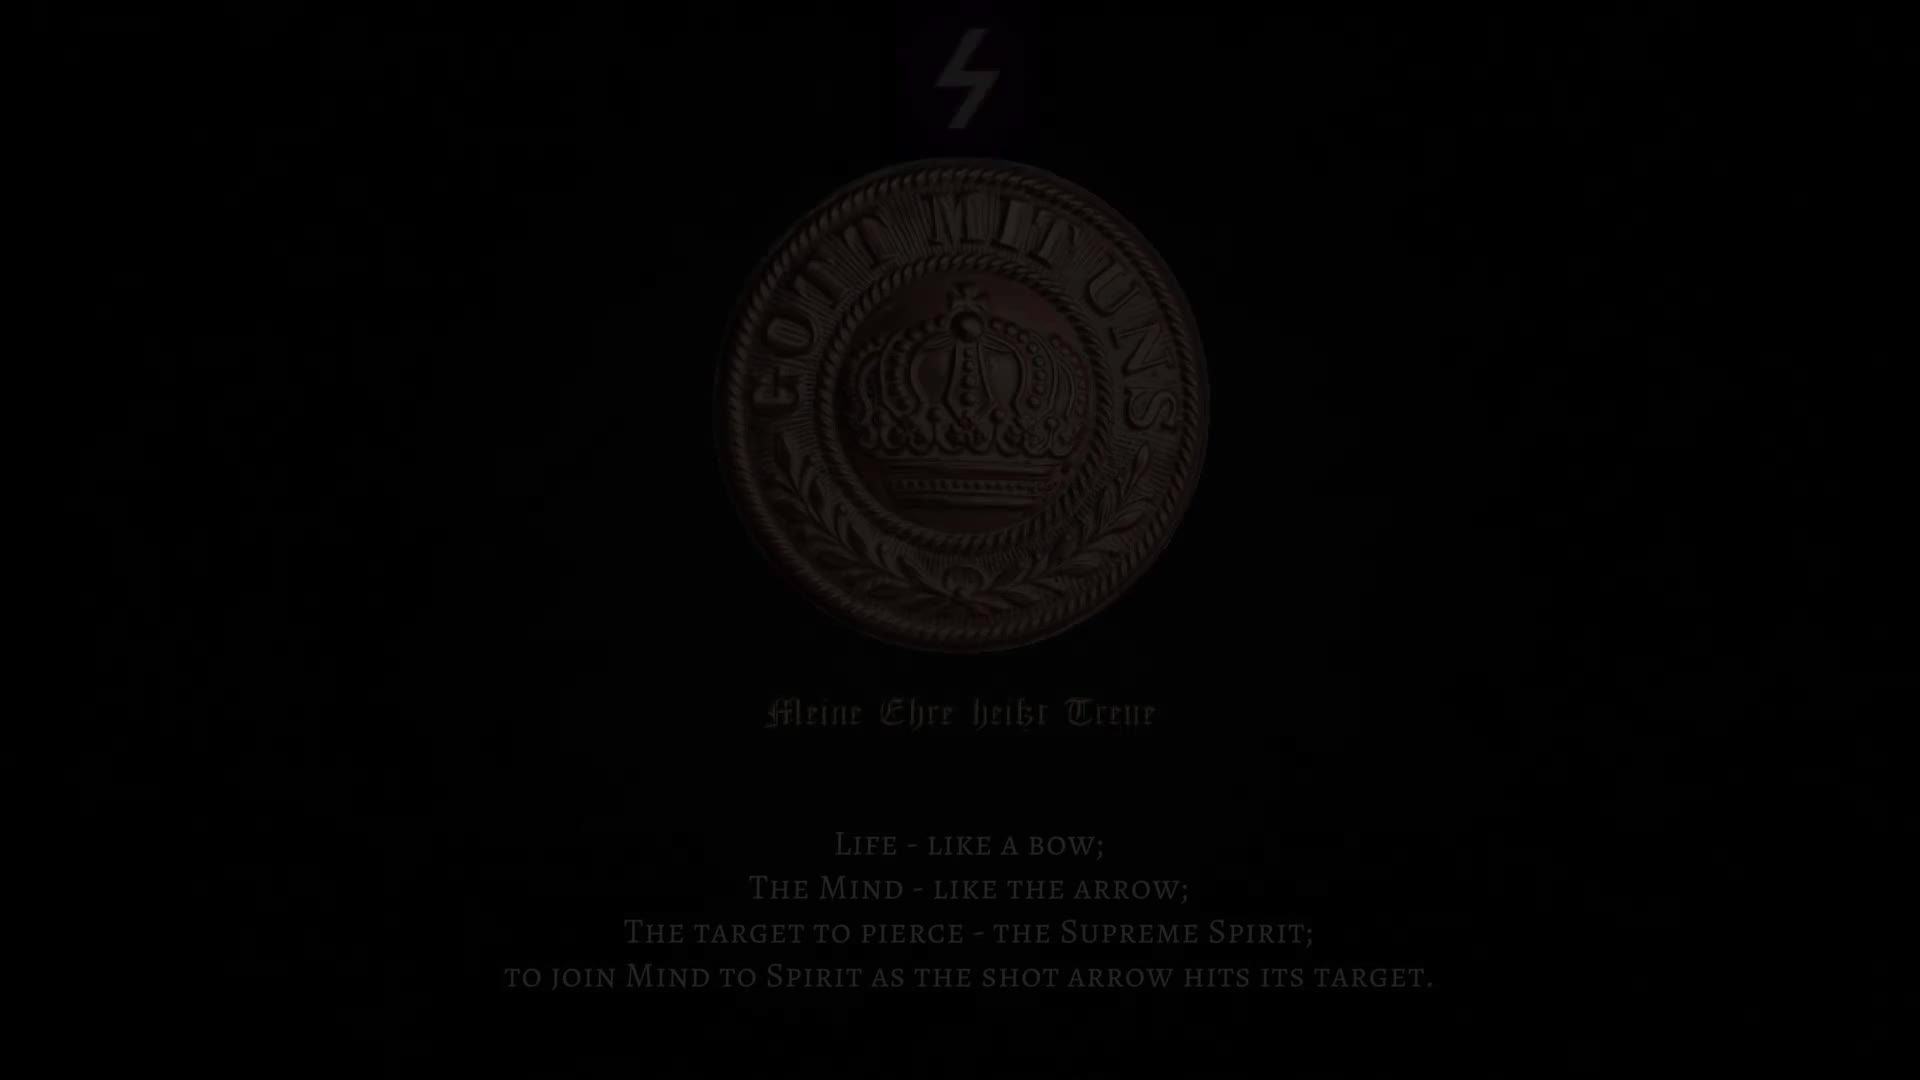 Our Subverted History, Part 5.3 - The Oera Linda Book